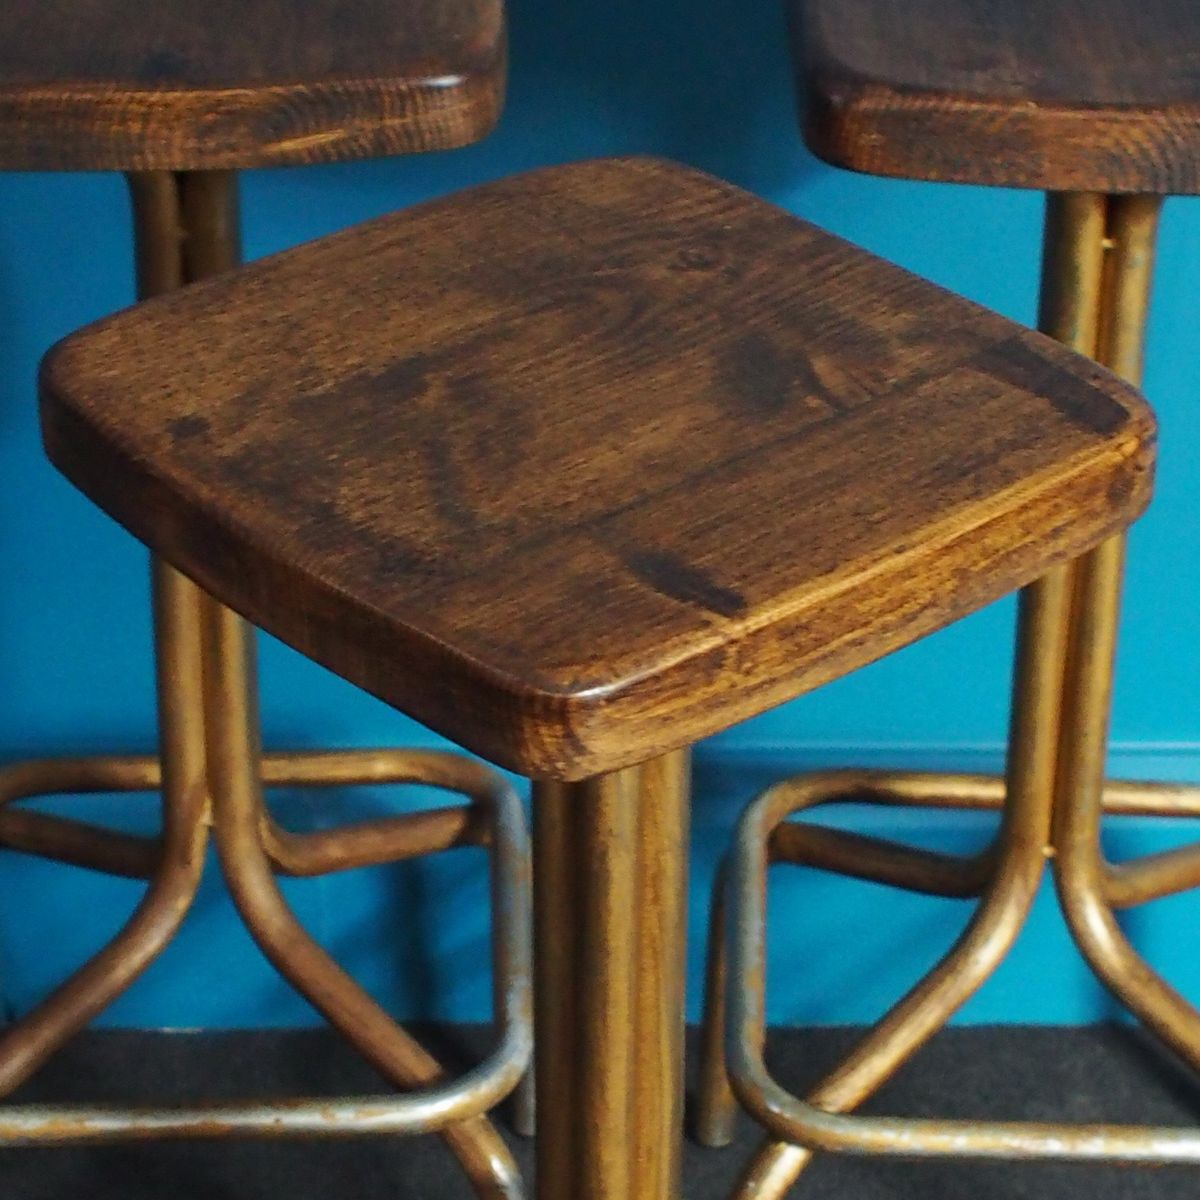 Vintage Tubular Steel Bar Stools Set Of 3 For Sale At Pamono. Full resolution  image, nominally Width 1200 Height 1200 pixels, image with #0A9BBC.